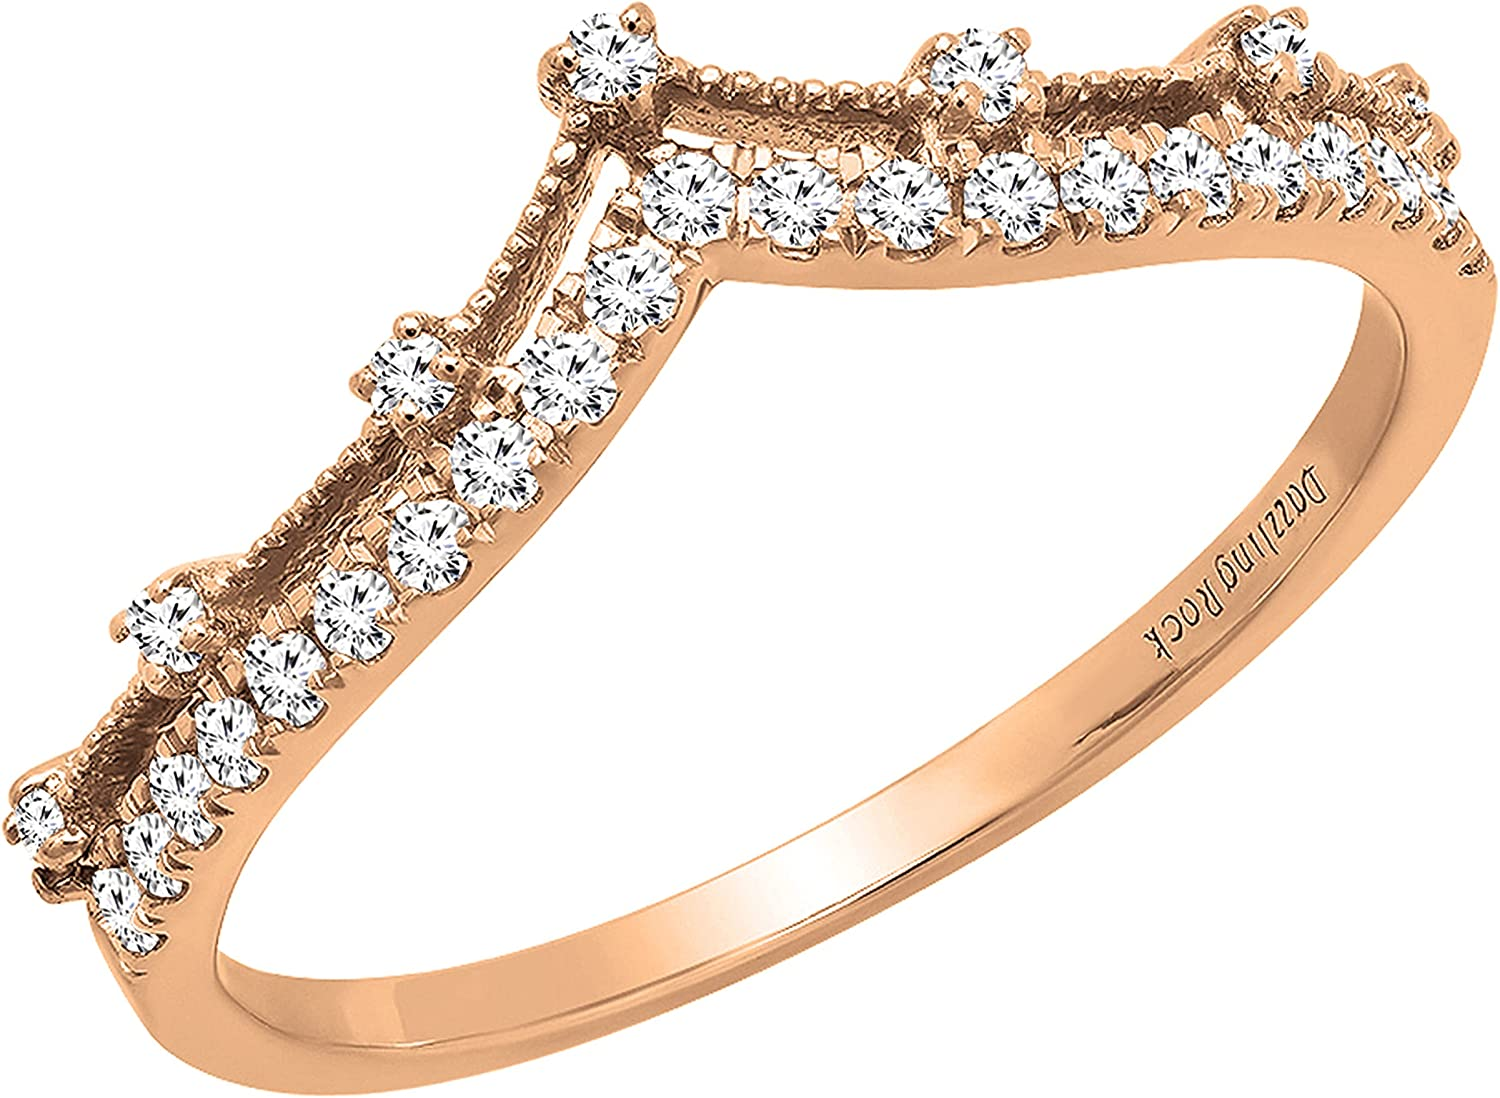 Dazzlingrock Collection 0.25 Carat (ctw) Round White Diamond Ladies Enhancer Guard Double Chevron V Shaped Stylish Matching Wedding Band 1/4 CT, Available in 10K/14K/18K Gold